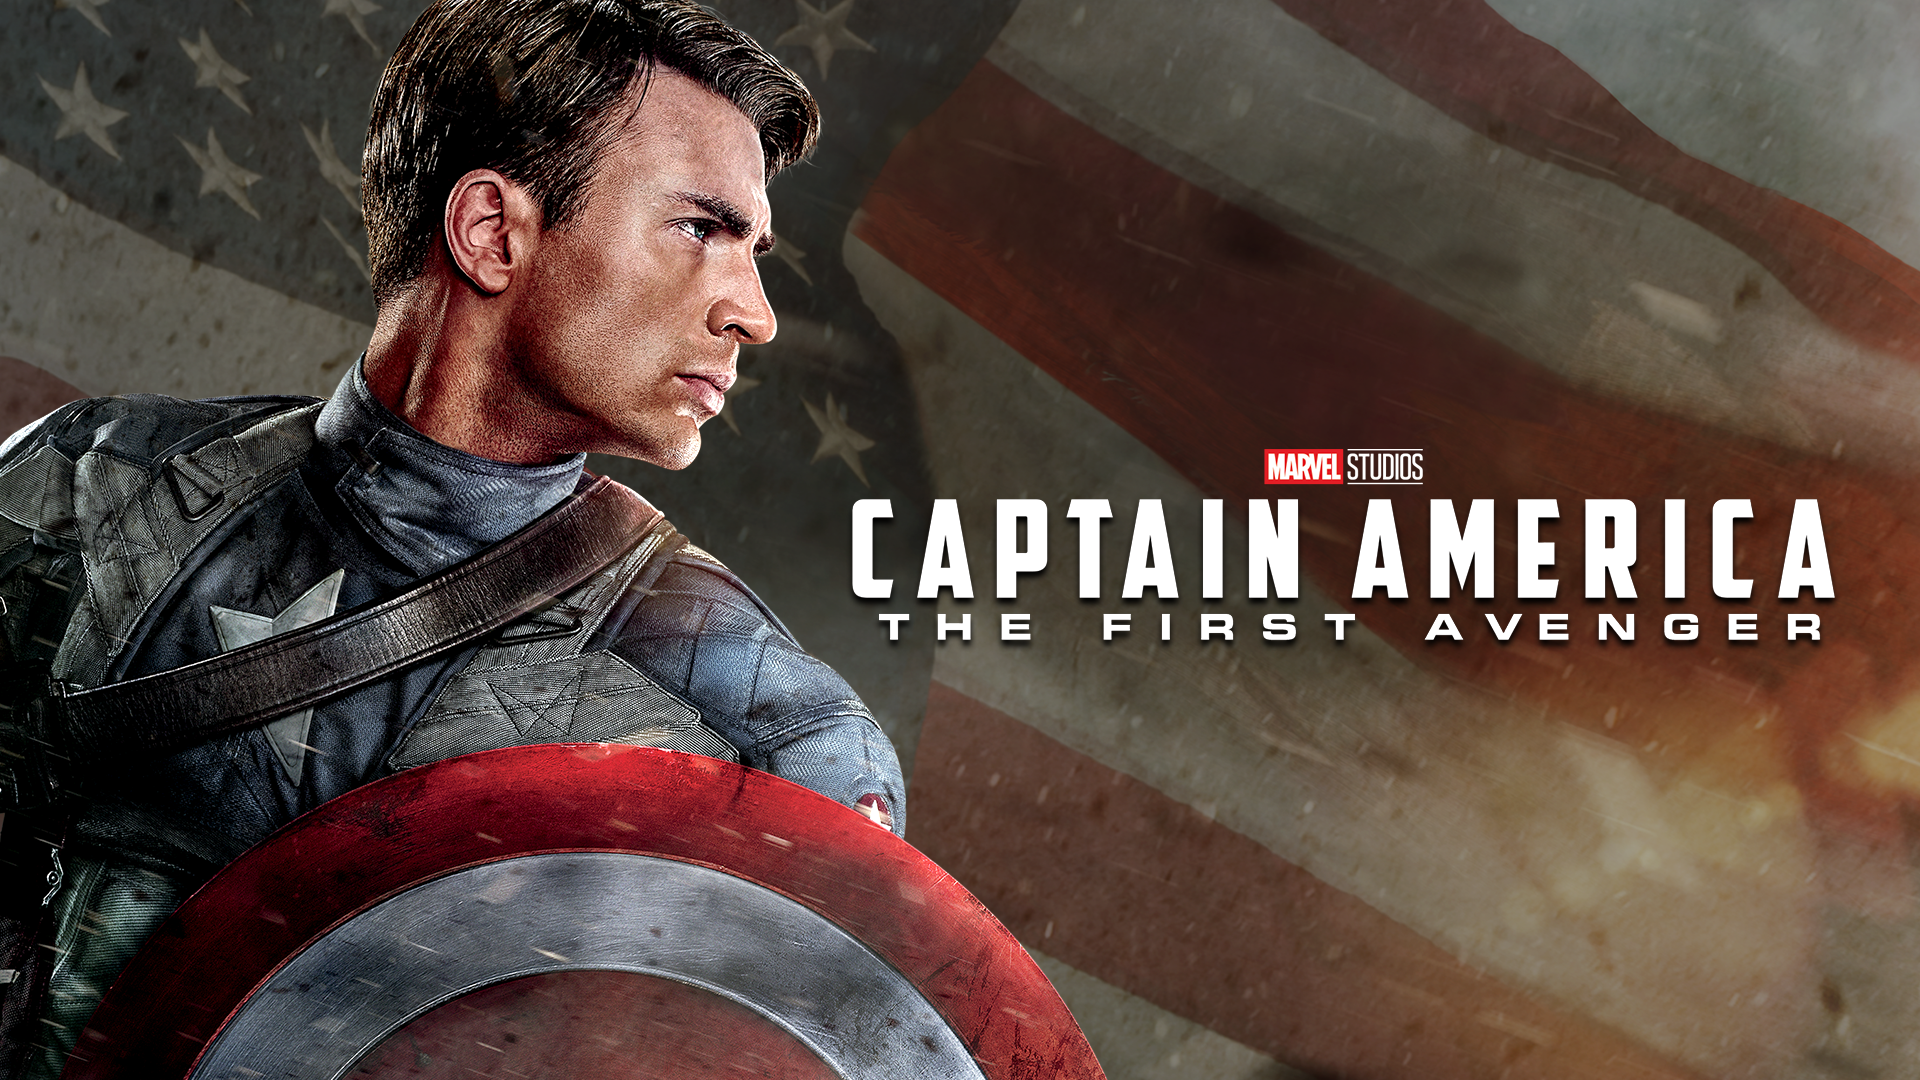 Watch Marvel Studios' Captain America: The First Avenger | Full Movie |  Disney+